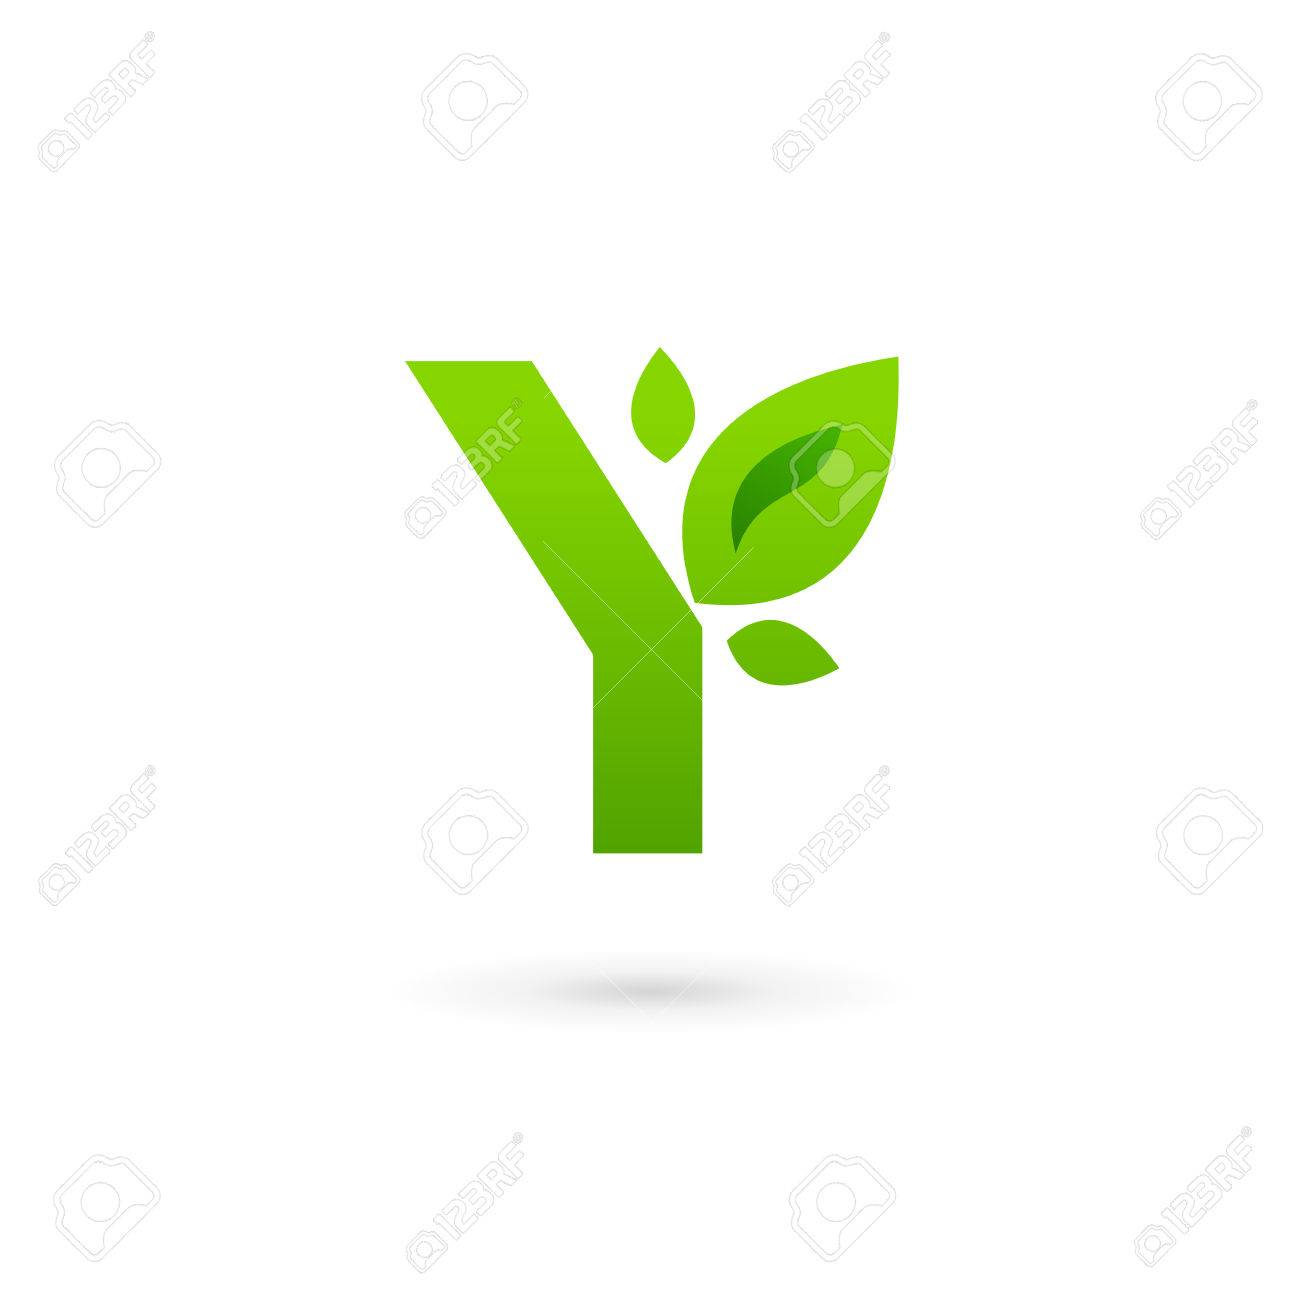 letter y eco leaves logo icon design template stock vector 34569629